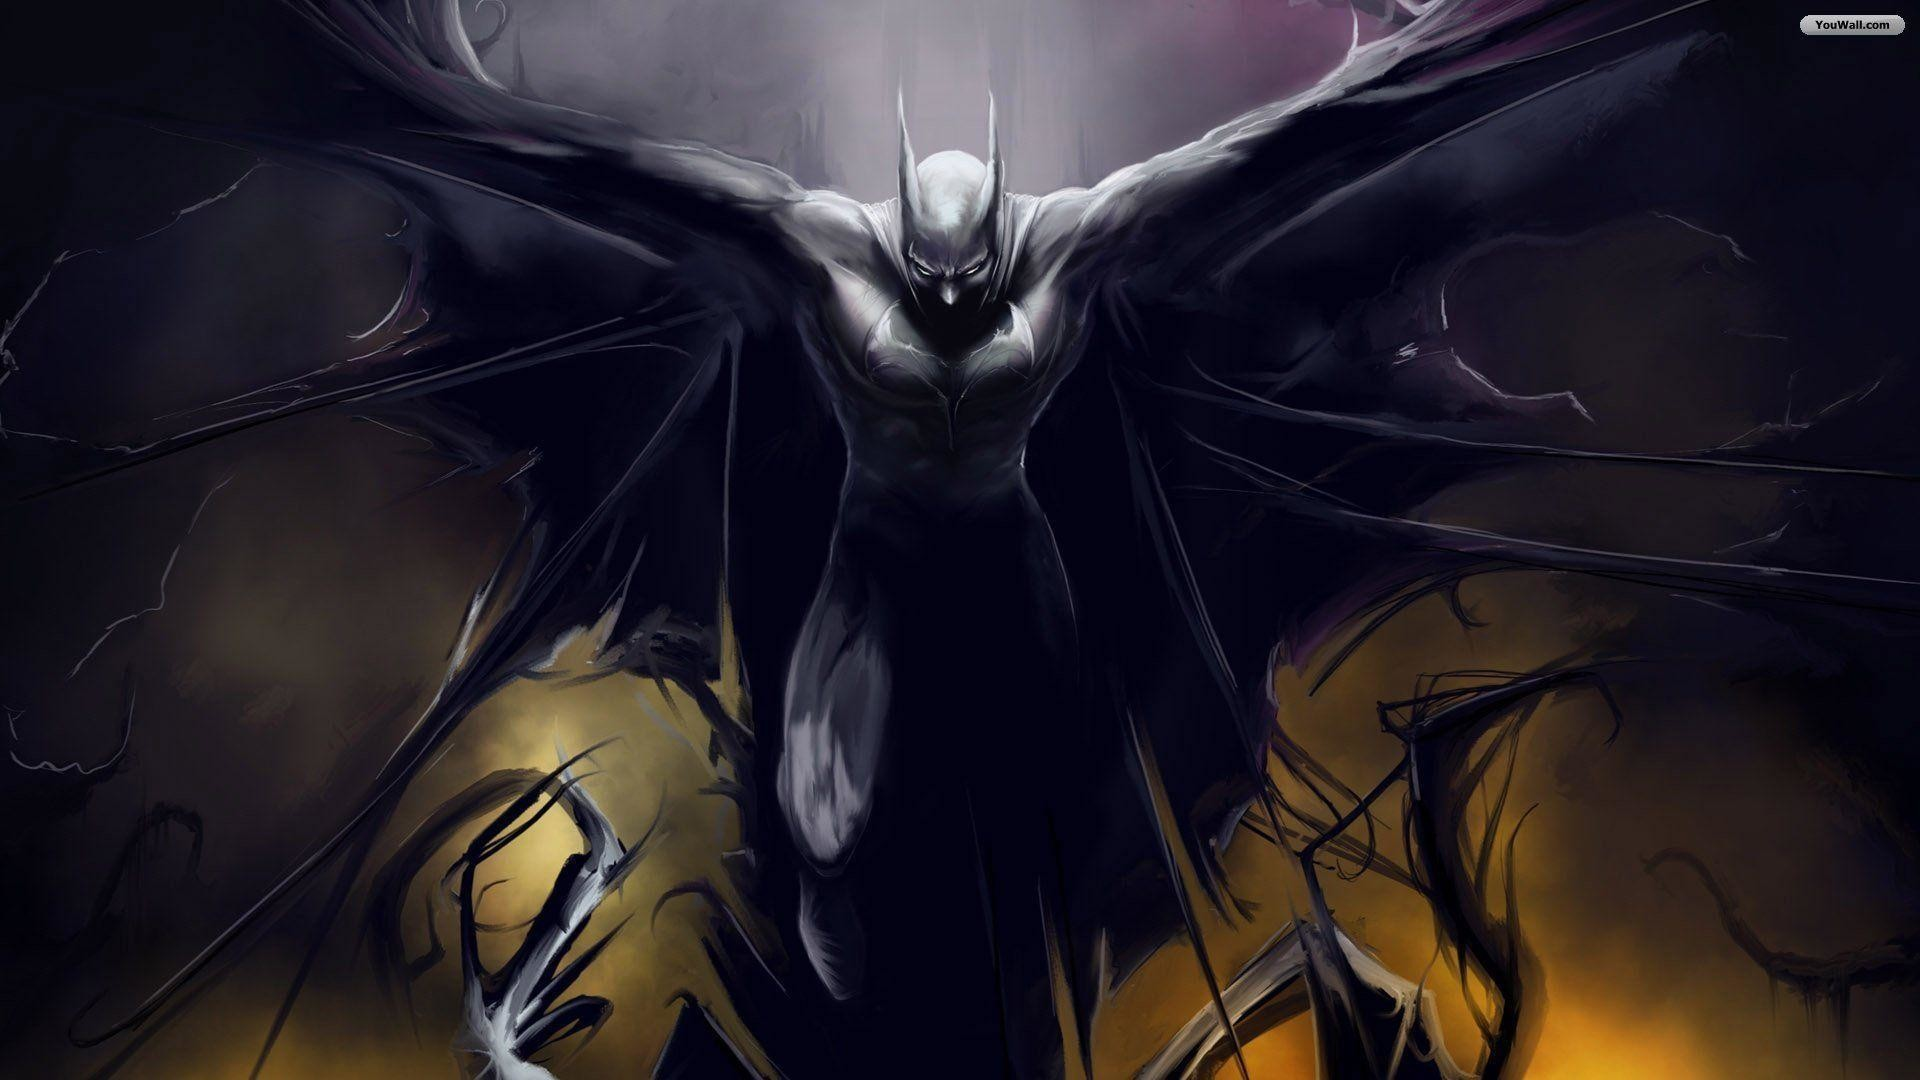 1920x1080 Batman Cartoon Wallpaper 15460 Hd Wallpapers in Movies - Telusers.